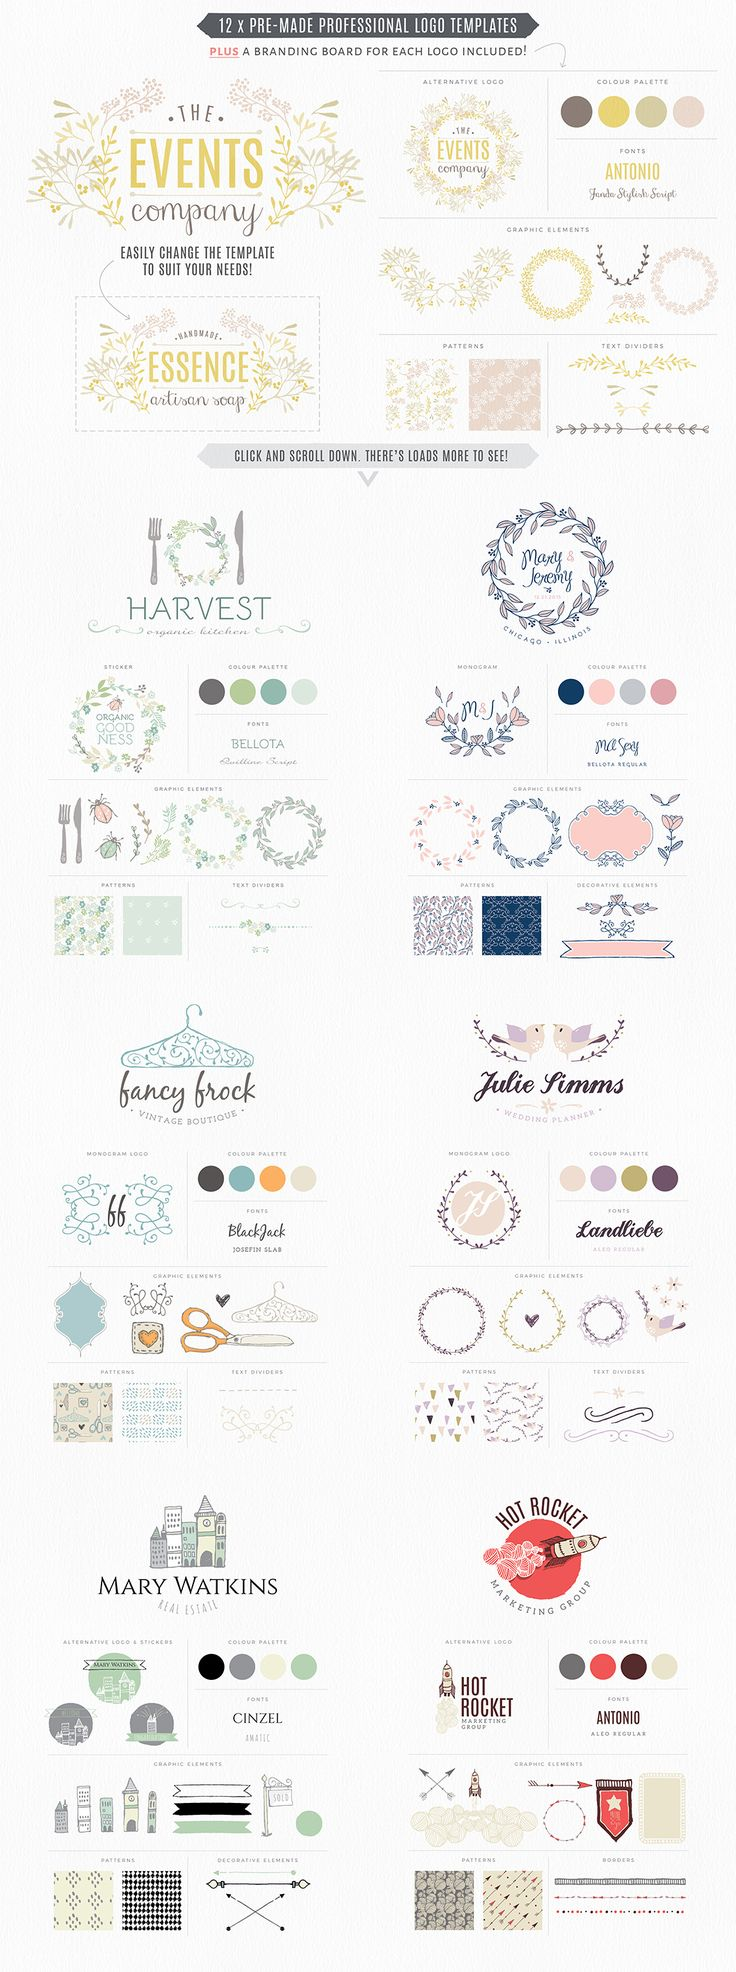 With over 300 elements including 12 pre-made logo templates PLUS a matching brand board for each logo this kit will kick-start your brand design into action and save loads of time in the process!